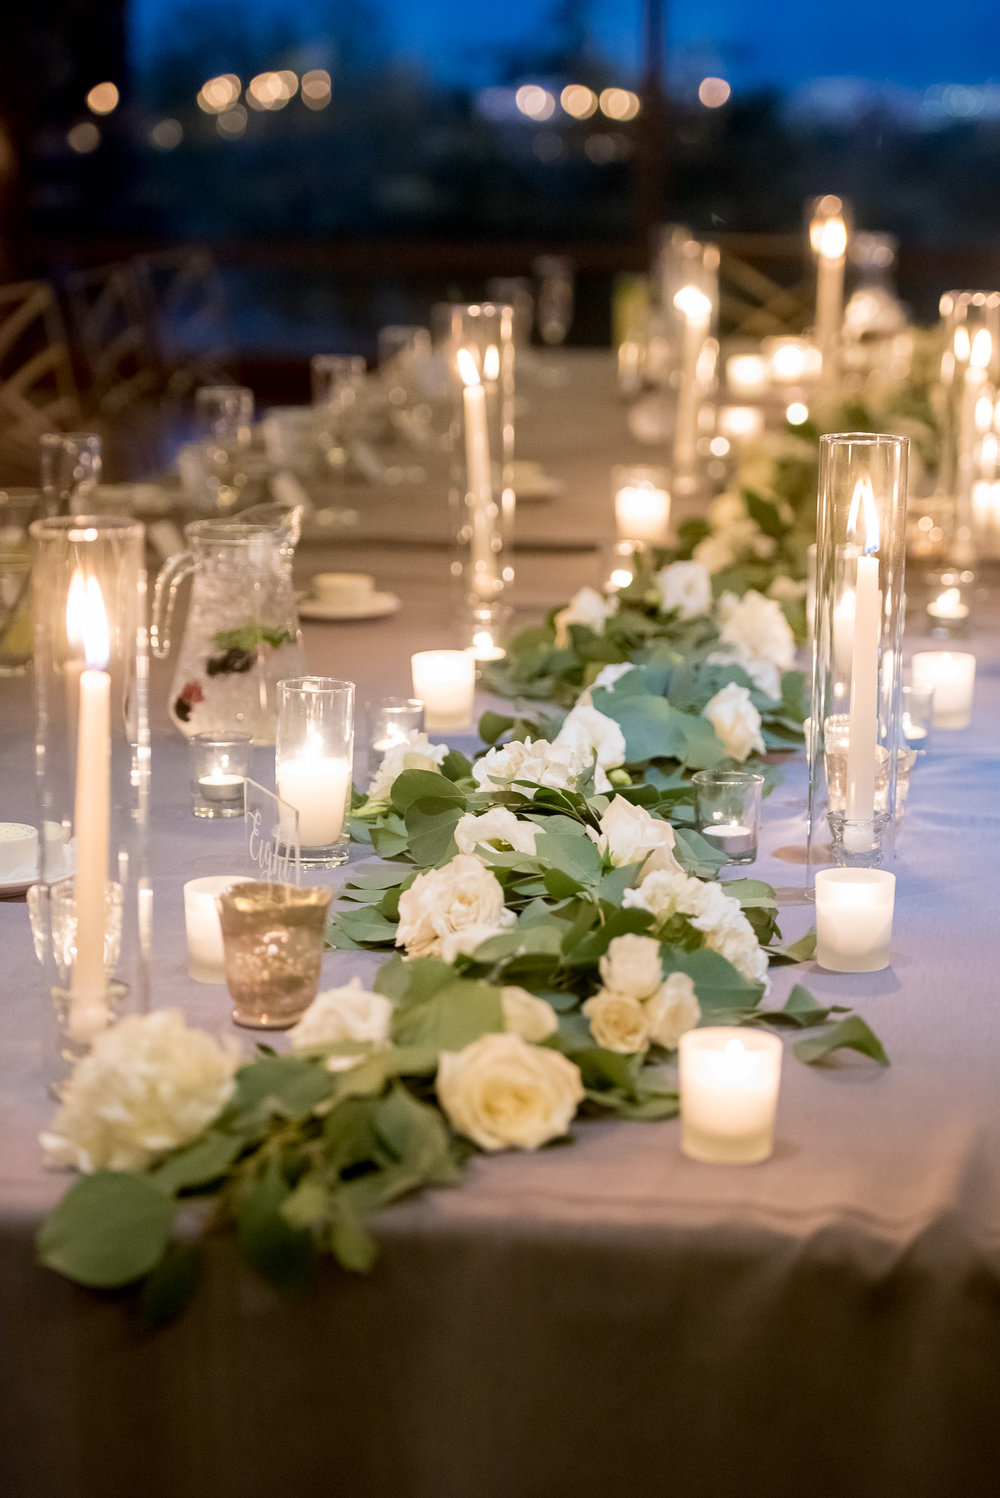 las vegas wedding planner angelica rose events wedding reception floral and decor.jpg